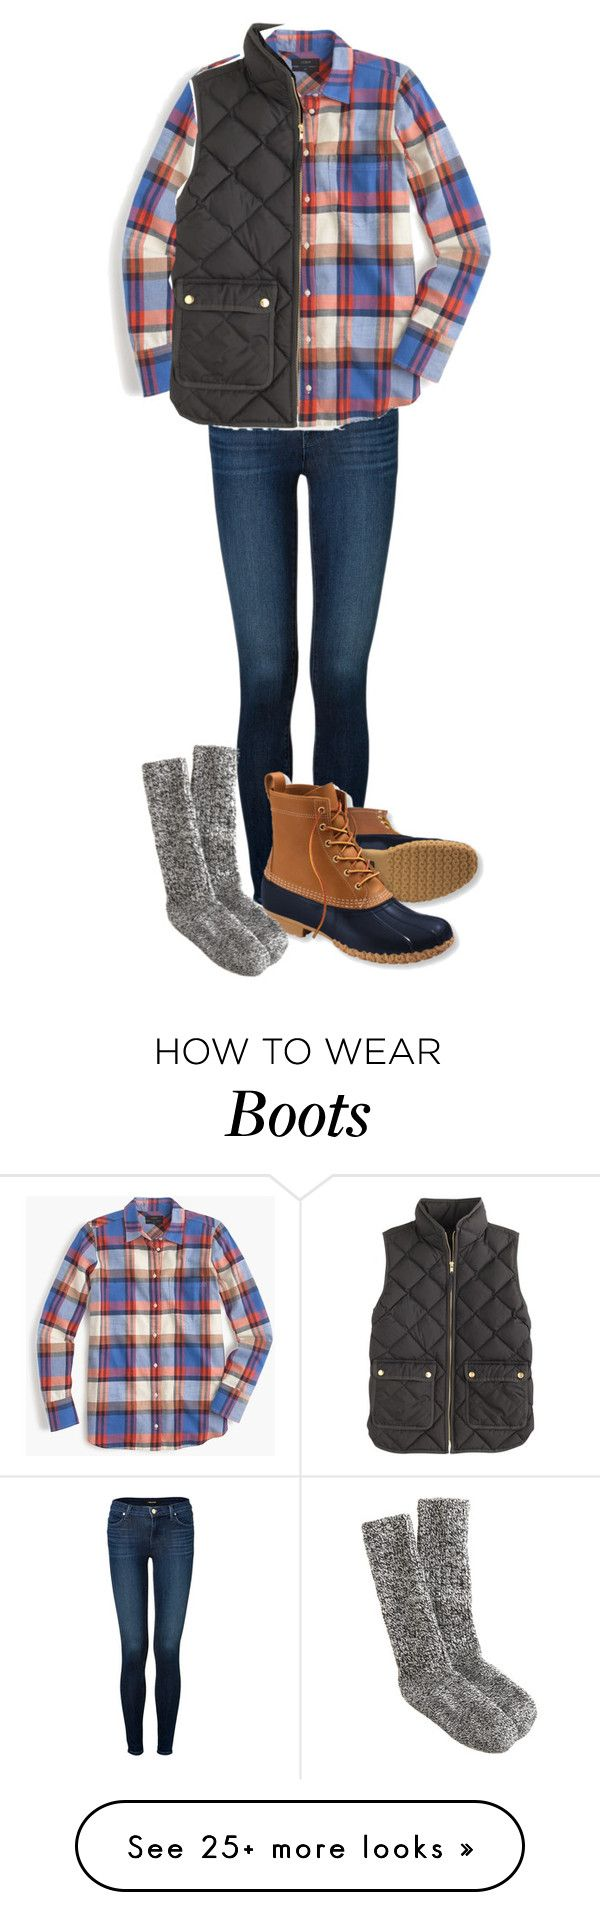 """Duck Boots and Vests"" by northernprep-nl12 on Polyvore featuring J Brand, J.Crew and L.L.Bean"